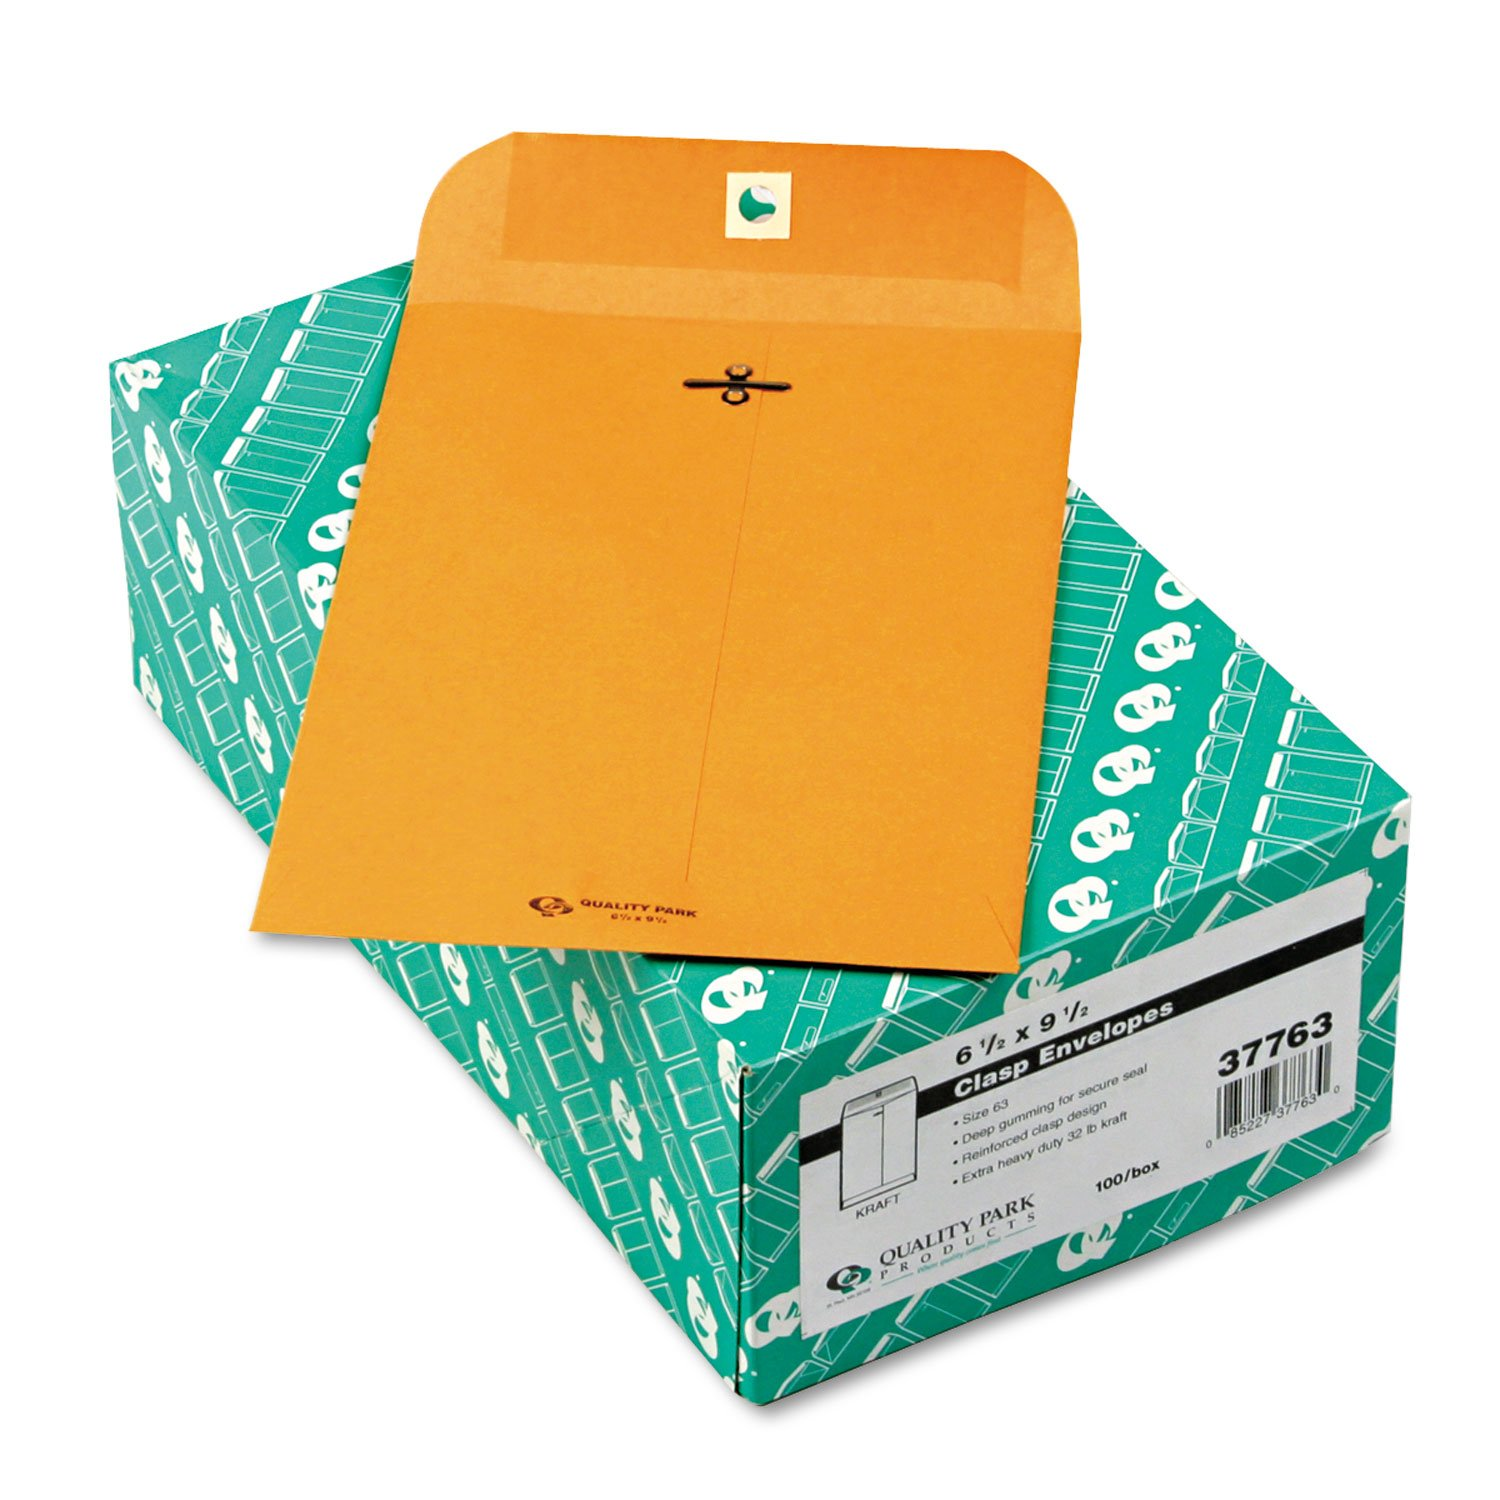 Quality Park 37763 Clasp Envelope, 6 1/2 x 9 1/2, 32lb, Brown Kraft, 100/Box